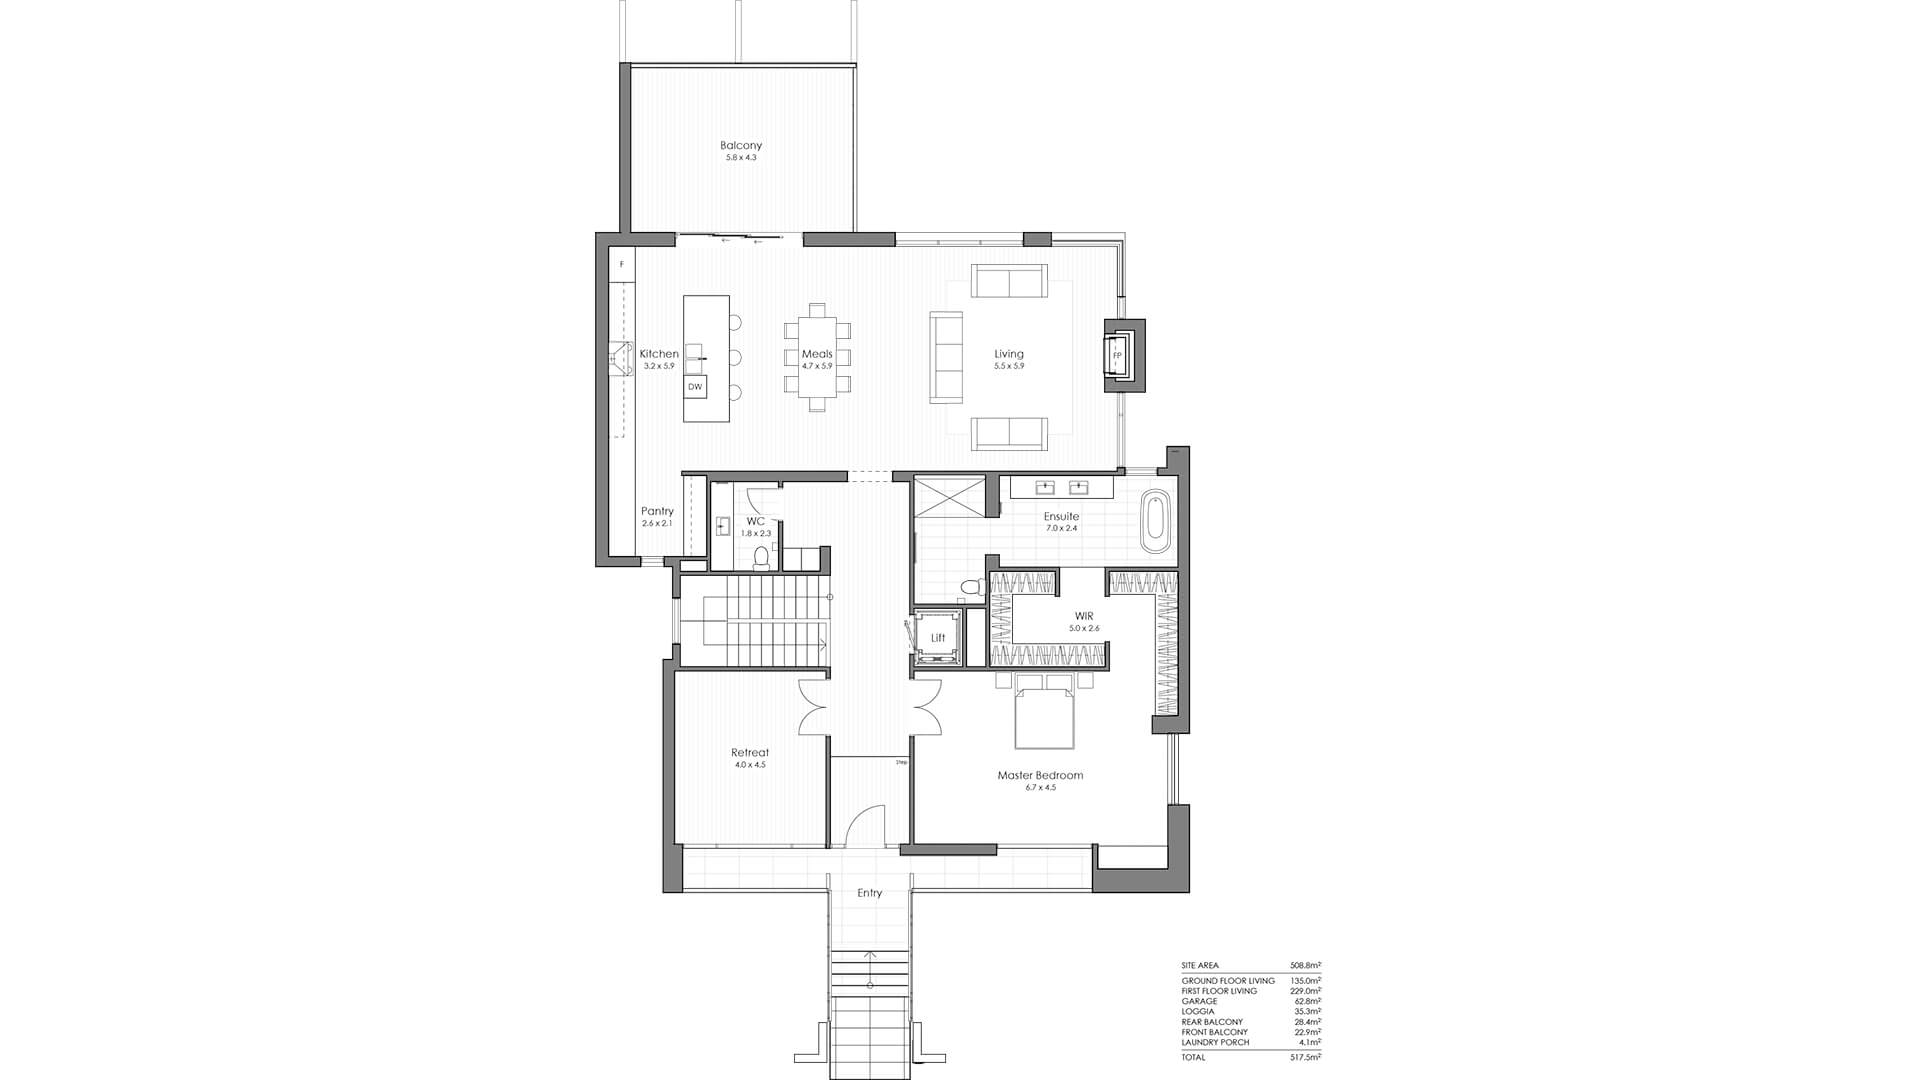 Residence 2 Marketing Plans-2